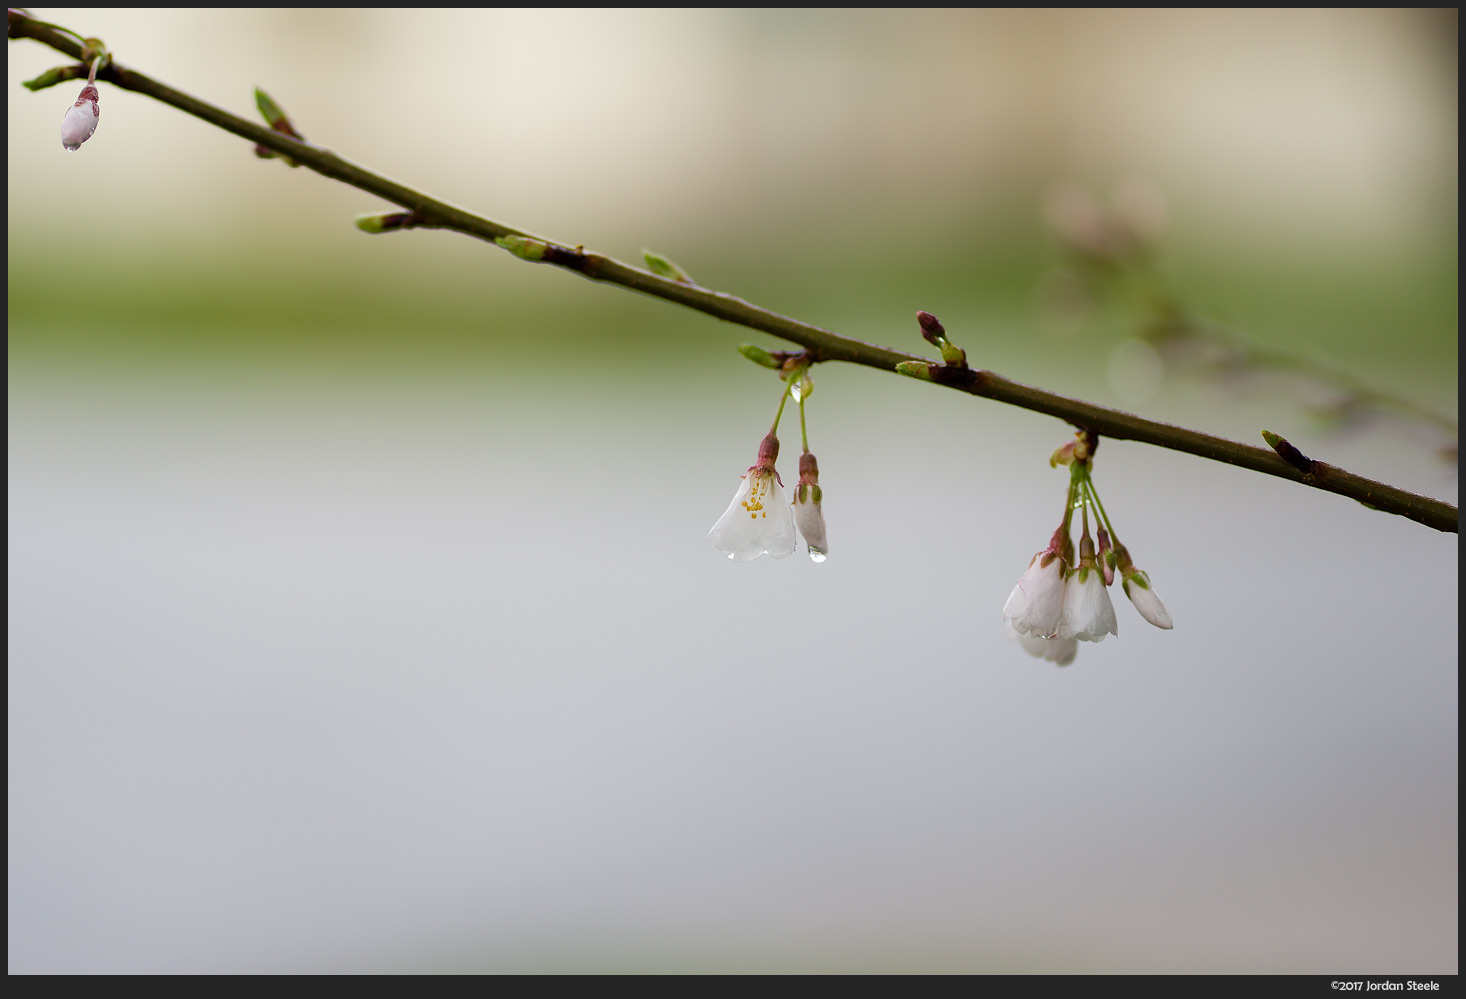 Blossoms after the Rain - Sony A7 II with Sony FE 85mm f/1.8 @ f/1.8